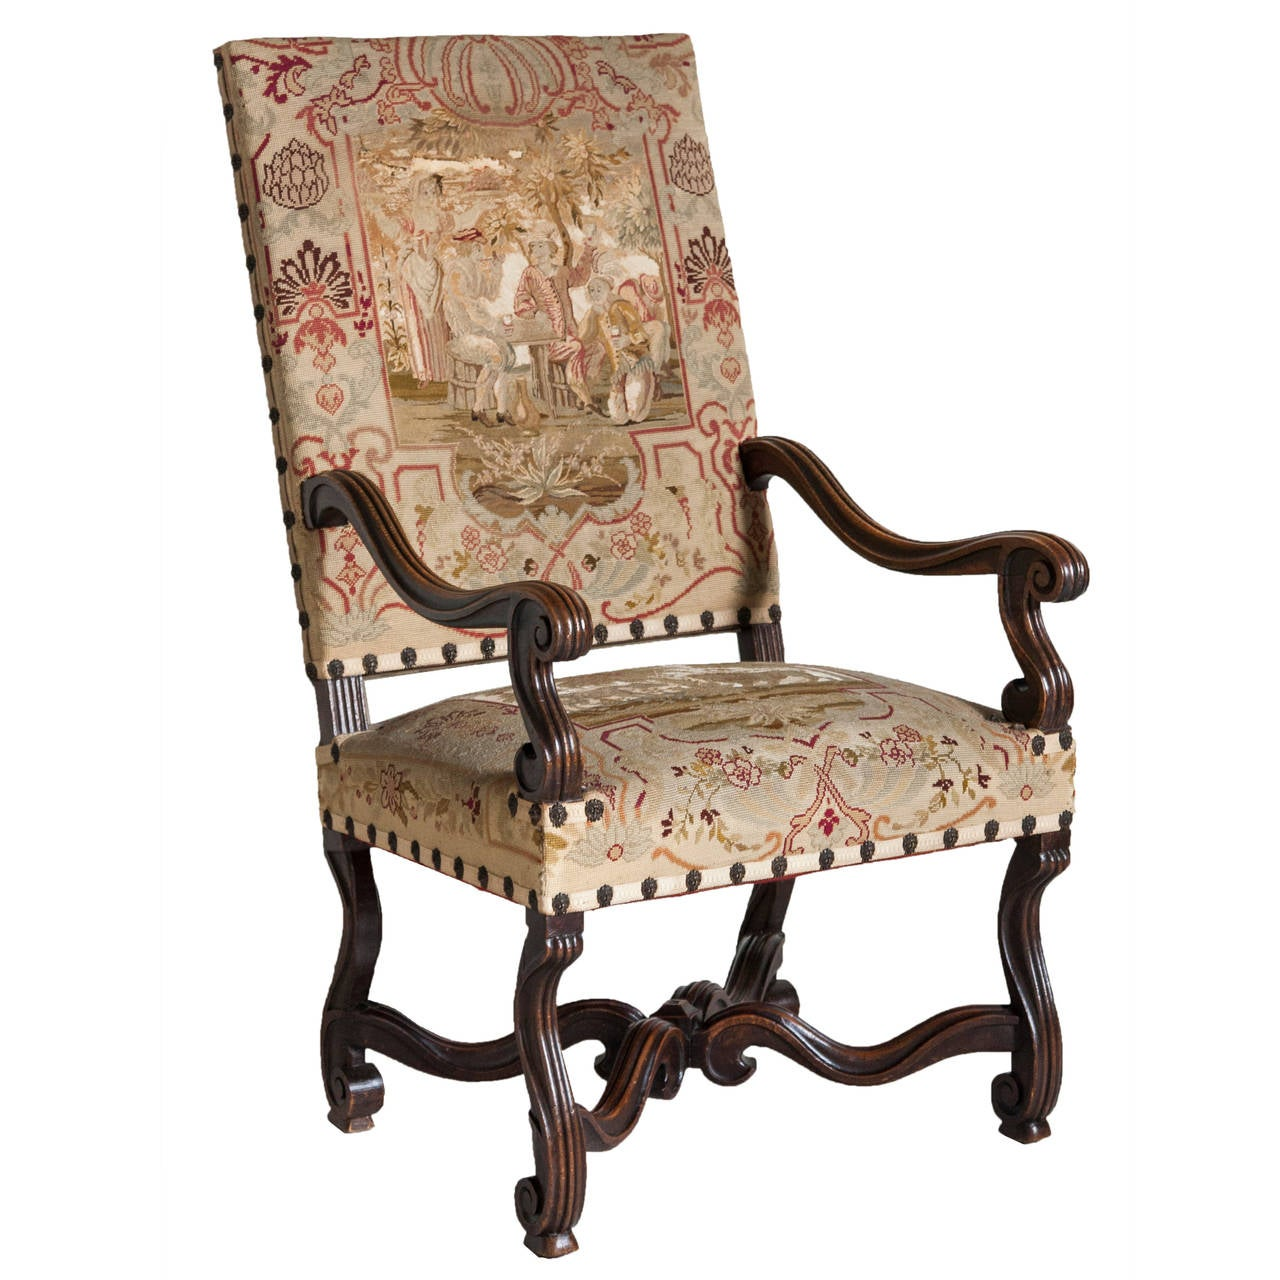 19th Century French Louis XIV Style Armchair with Original